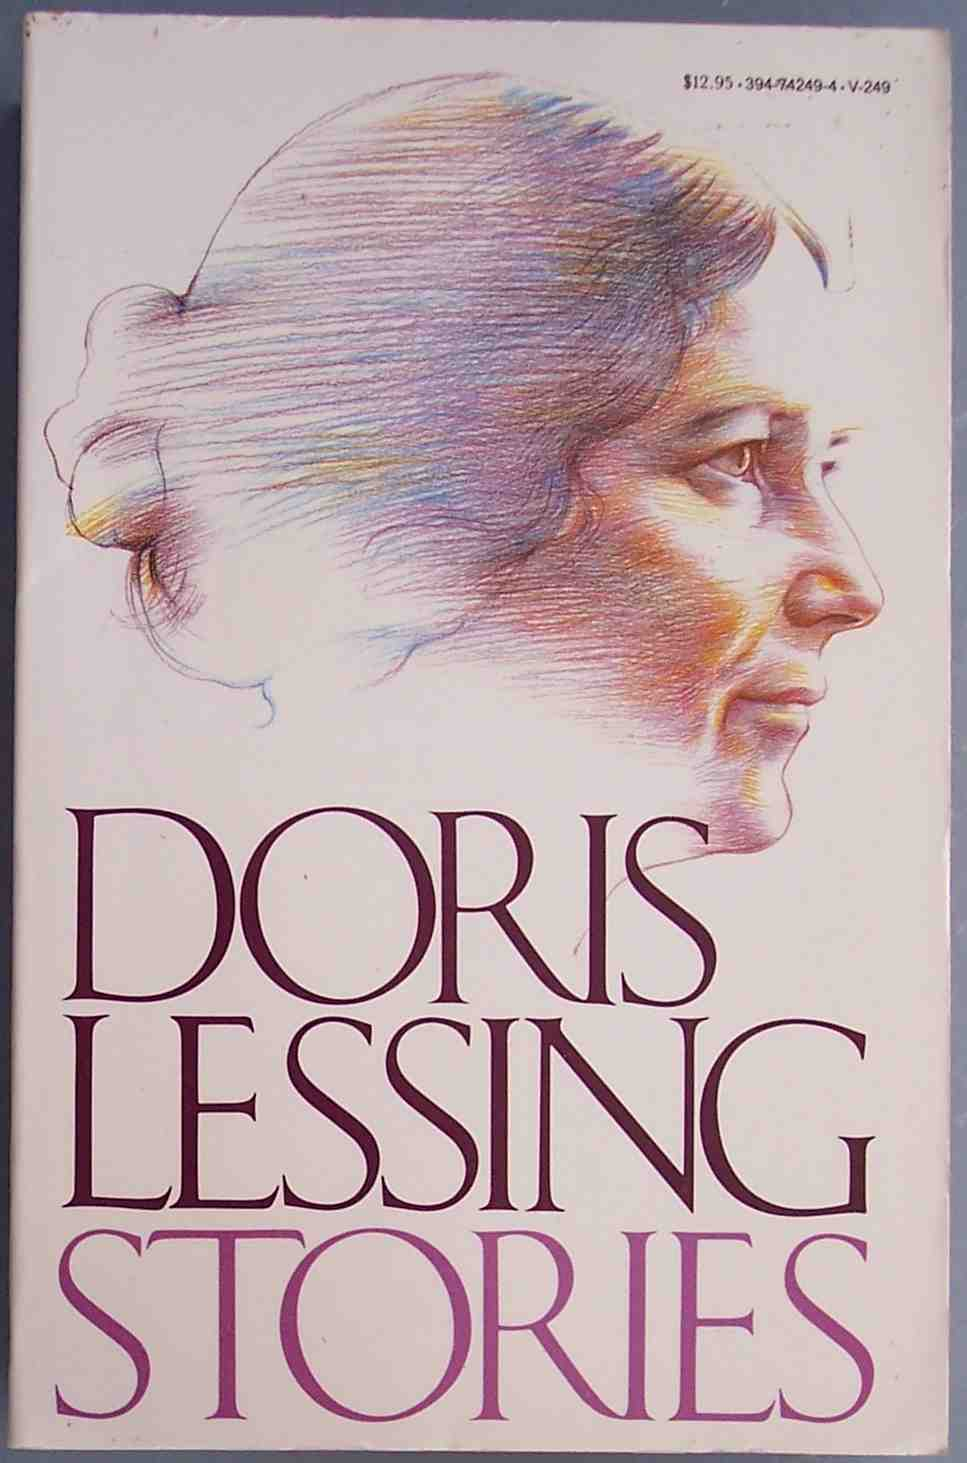 """report on the threatened city On friday we will start reading a short story by doris lessing, """"report on a threatened city"""" for that, i want you to copy a dictionary definition of the word """"report."""